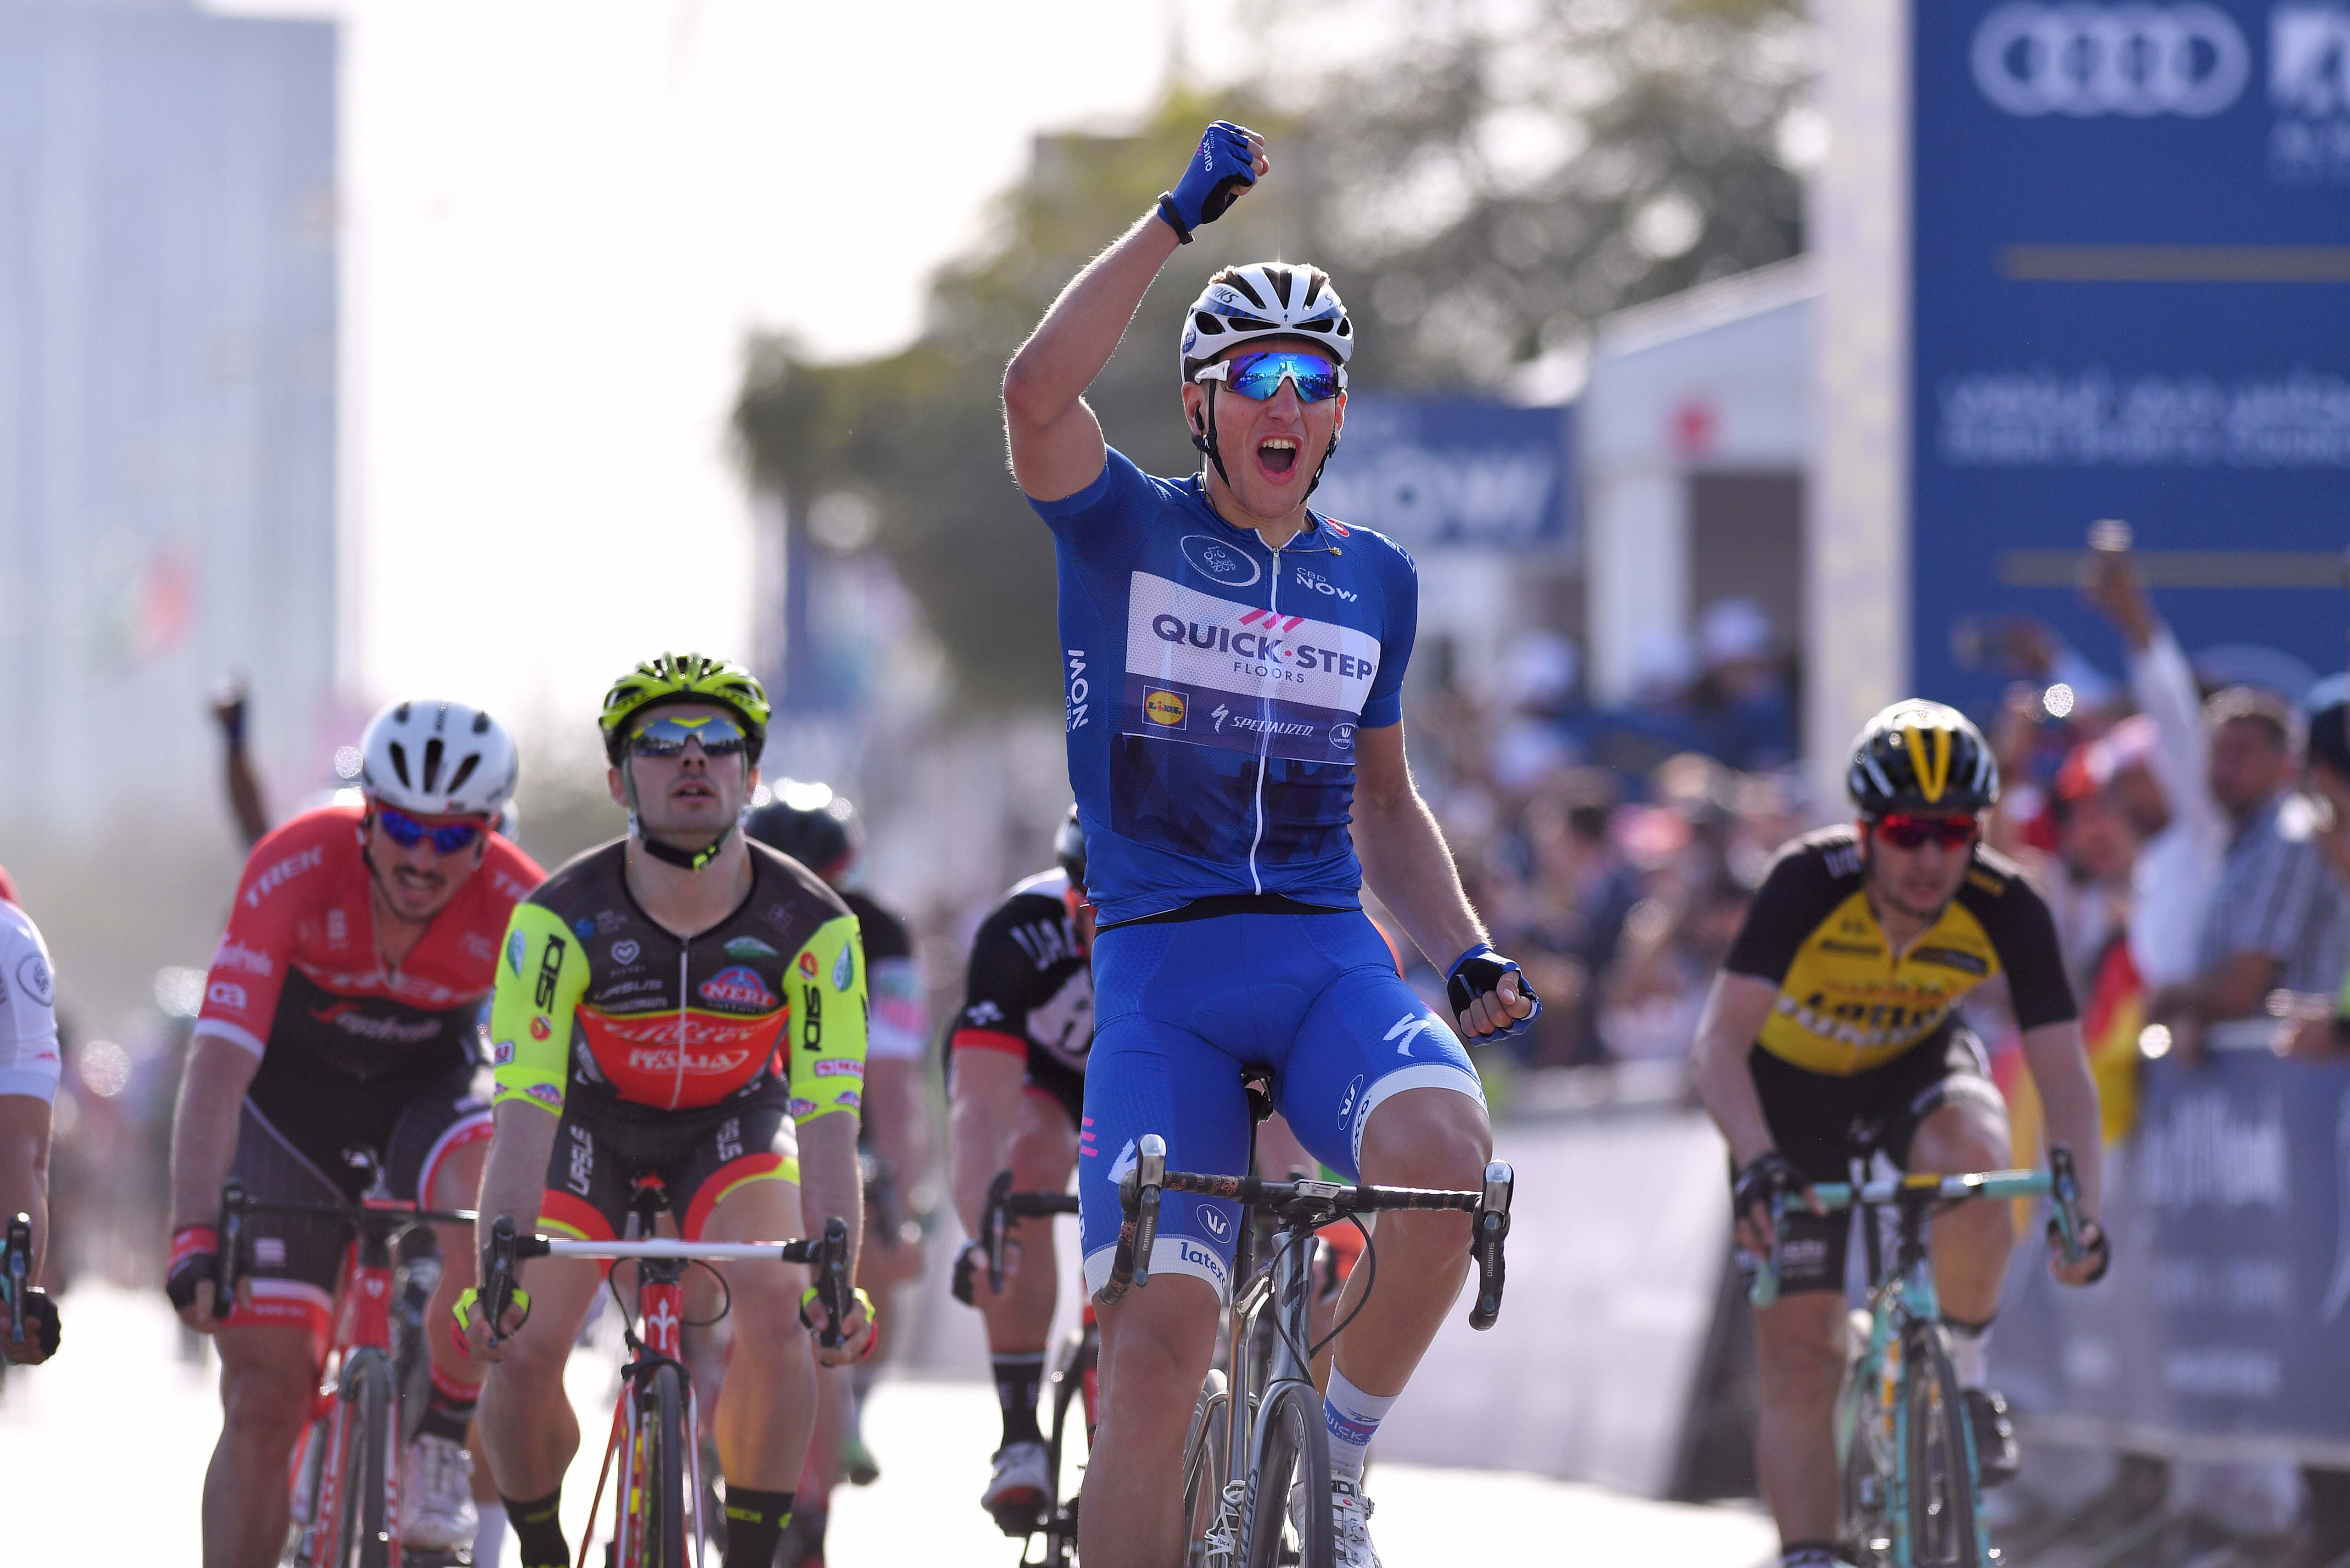 Marcel kittel wins second stage of dubai tour the bike for Quick step floors cycling team